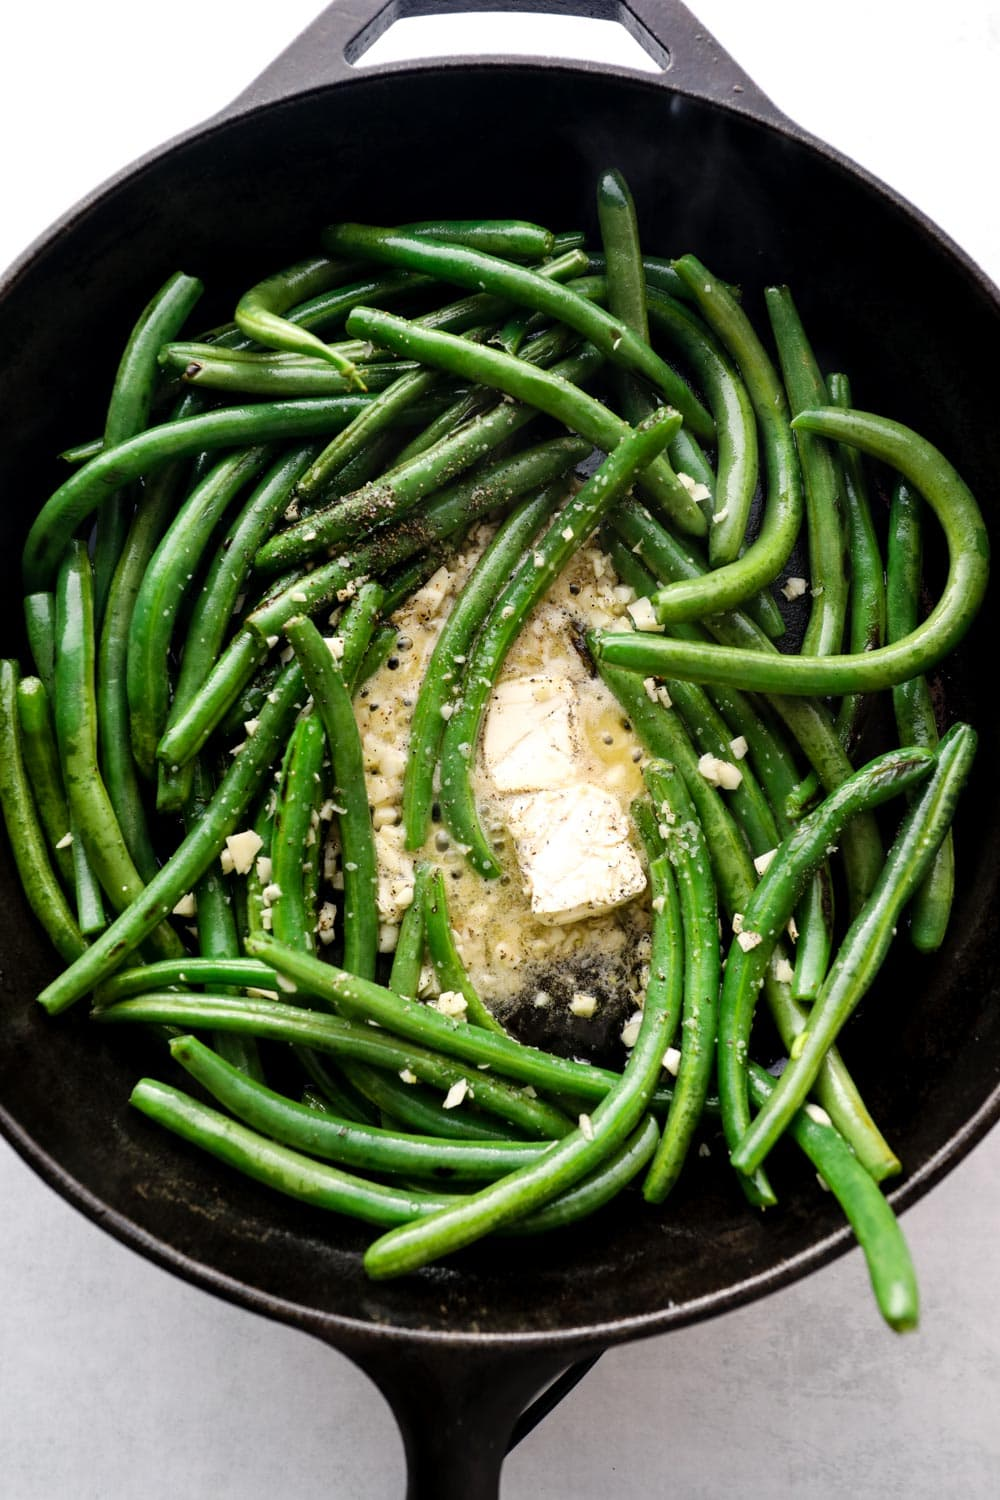 Green beans cooking in a cast iron skillet with butter, salt, and pepper.